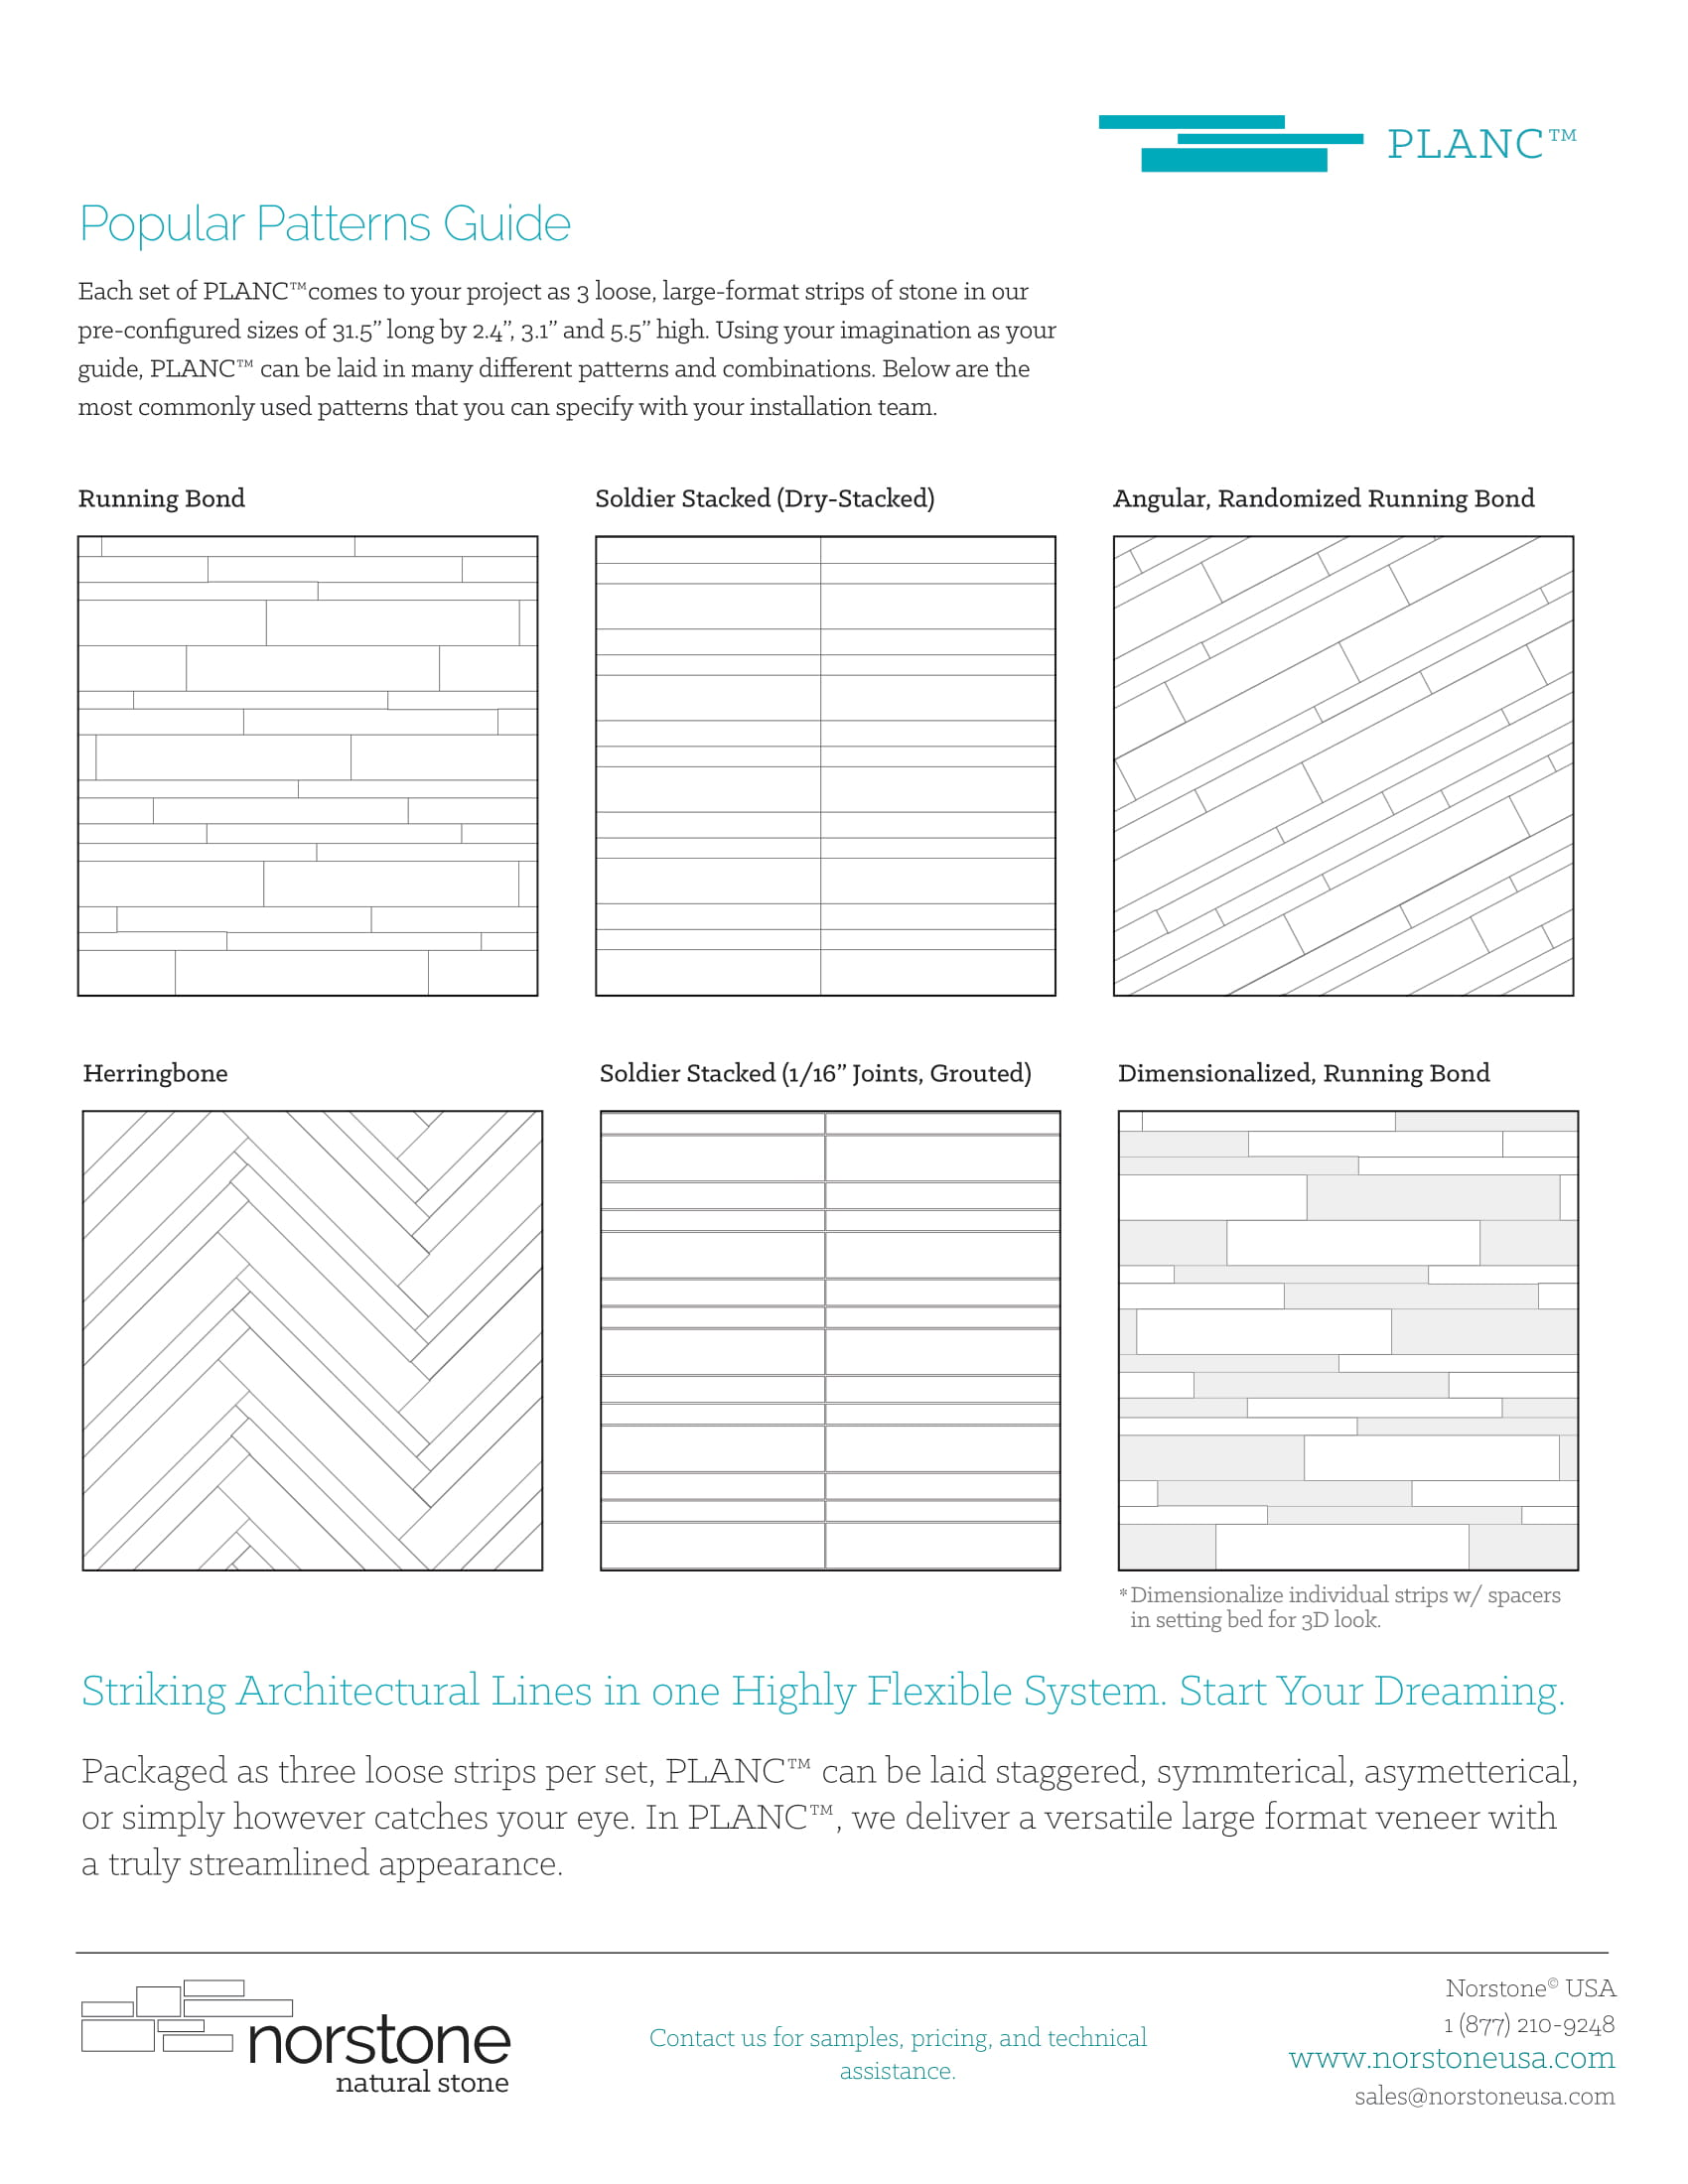 Norstone Pattern Guide for the Planc Large Format Tile Series Product